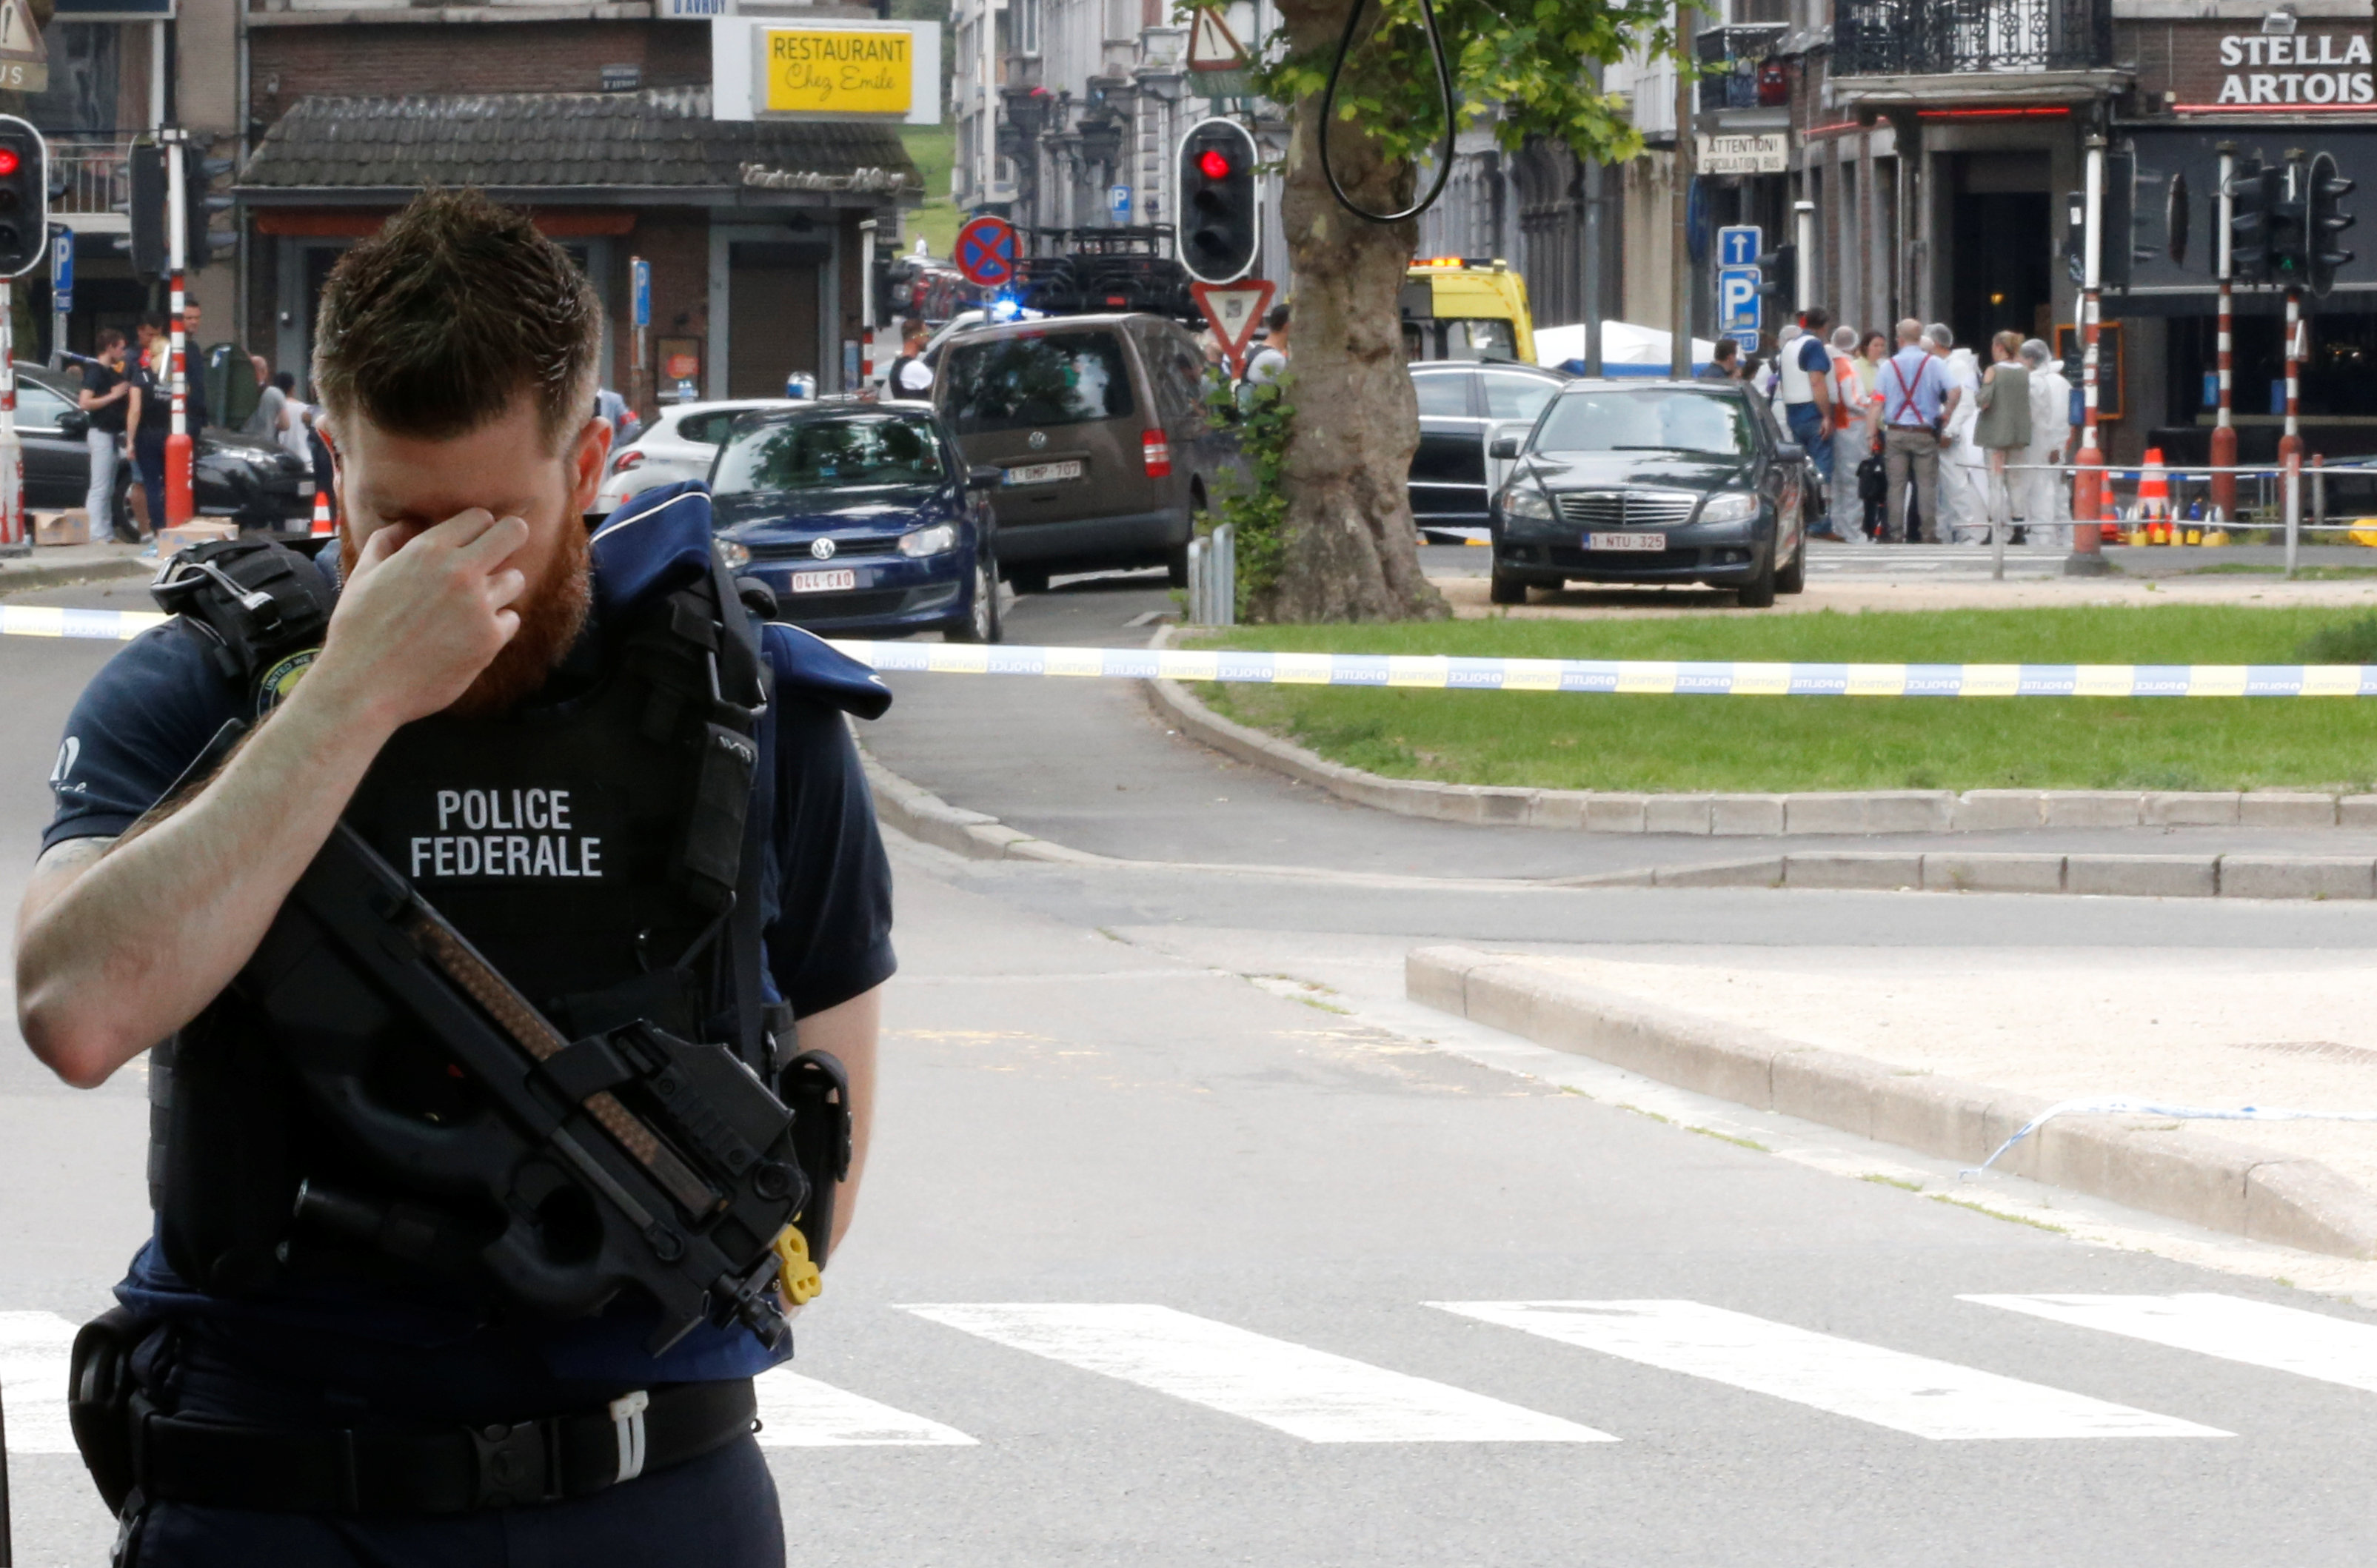 A police officer is seen on the scene of a shooting in Liege, Belgium, May 29, 2018. REUTERS/Francois Lenoir